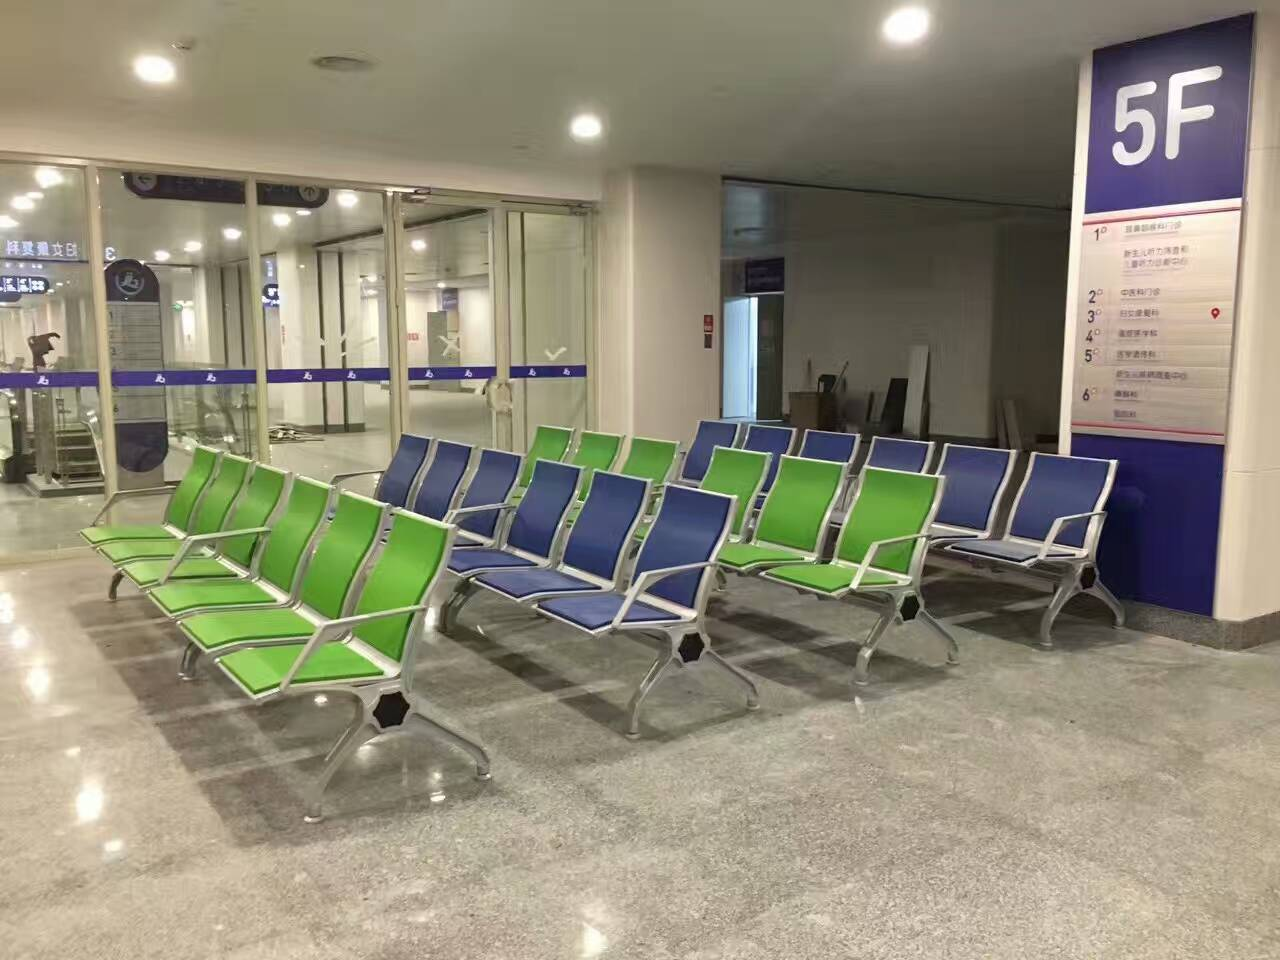 Public waiting chair row seats